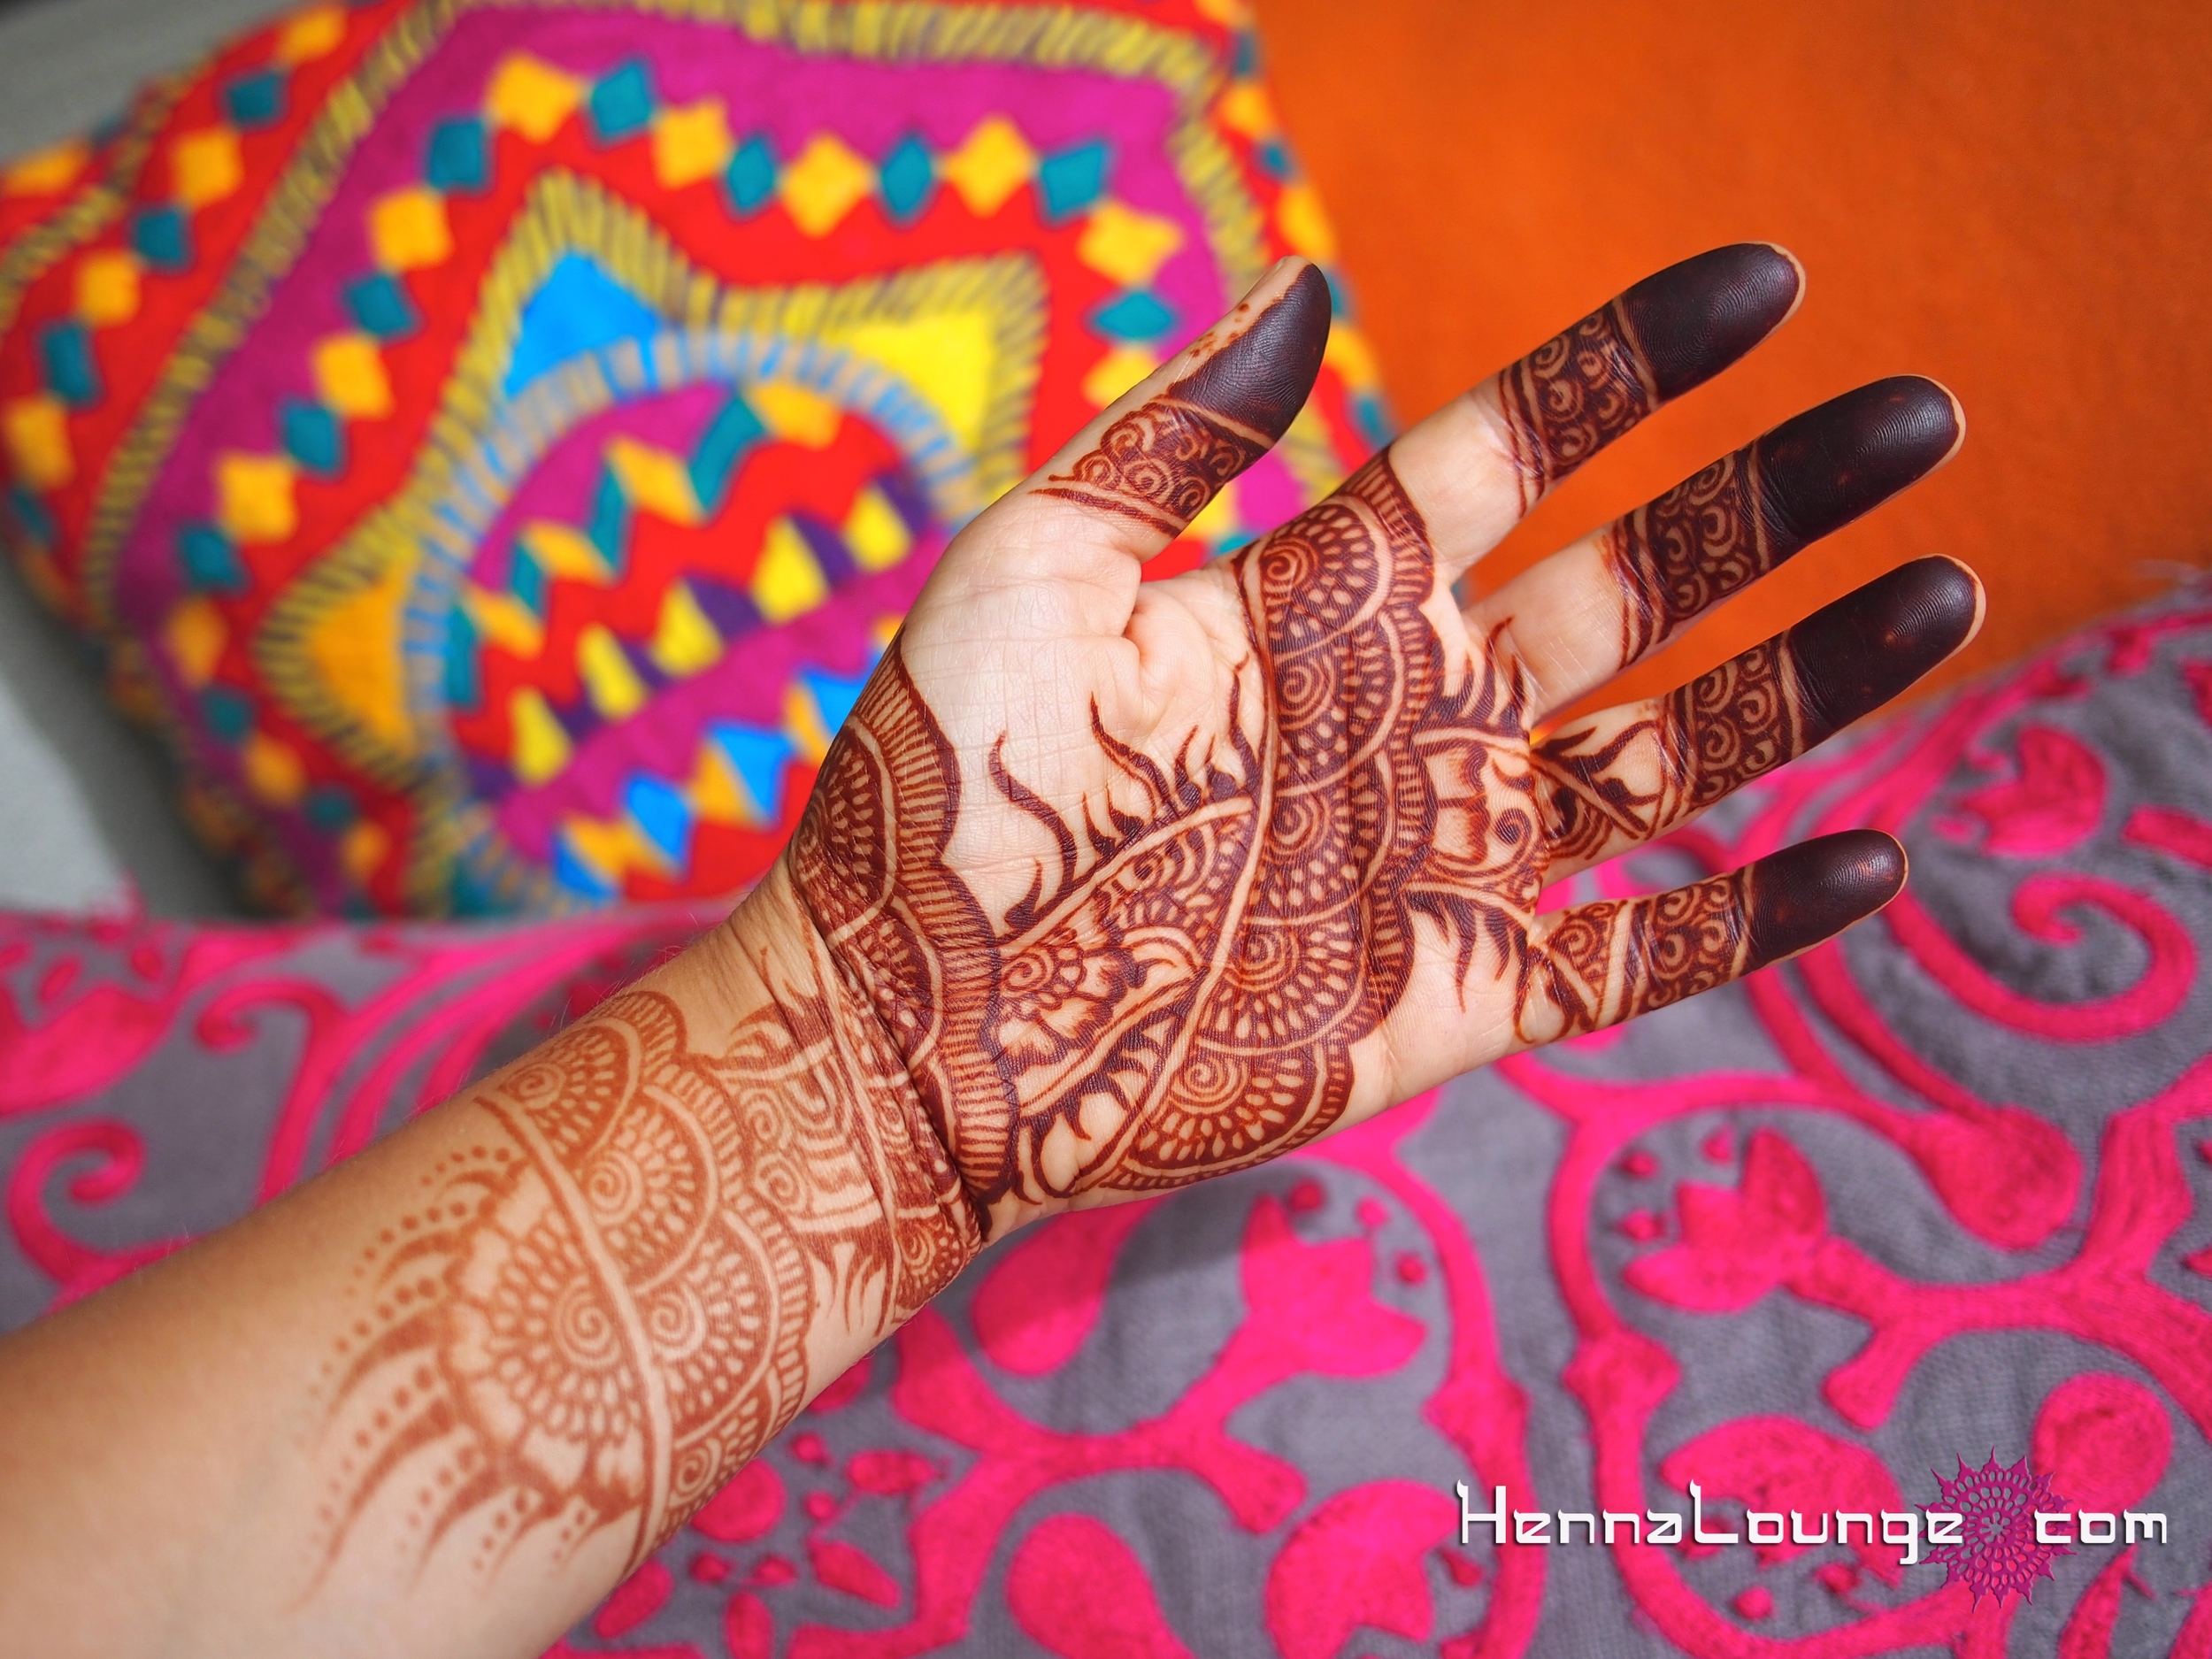 dark henna, any questions?